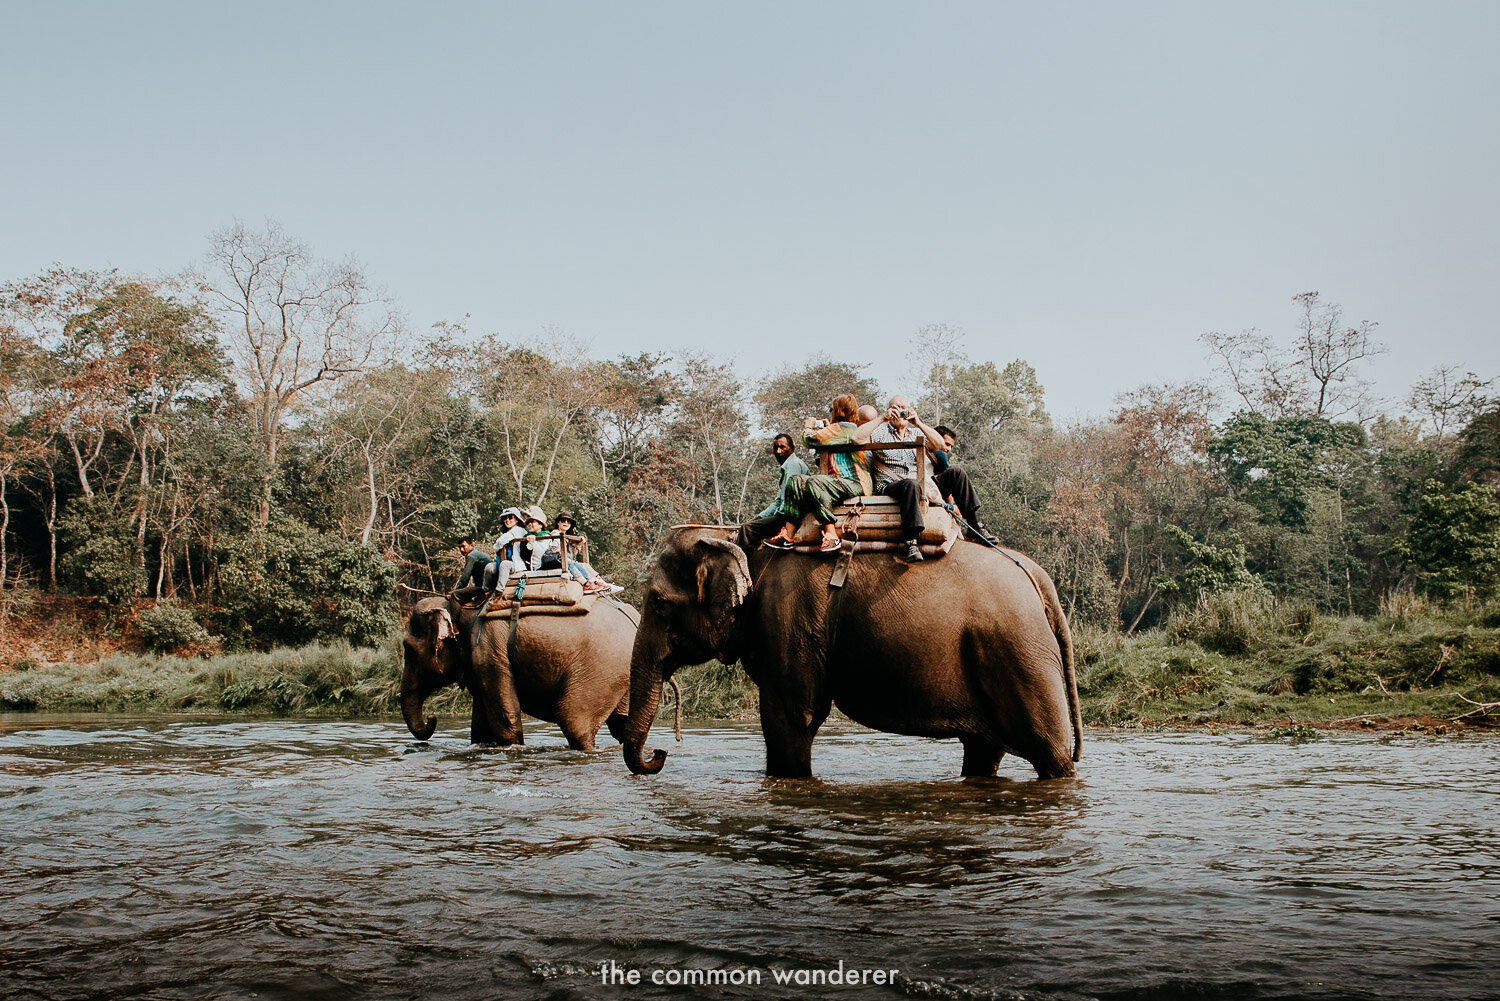 Riding elephants is a very bad practice